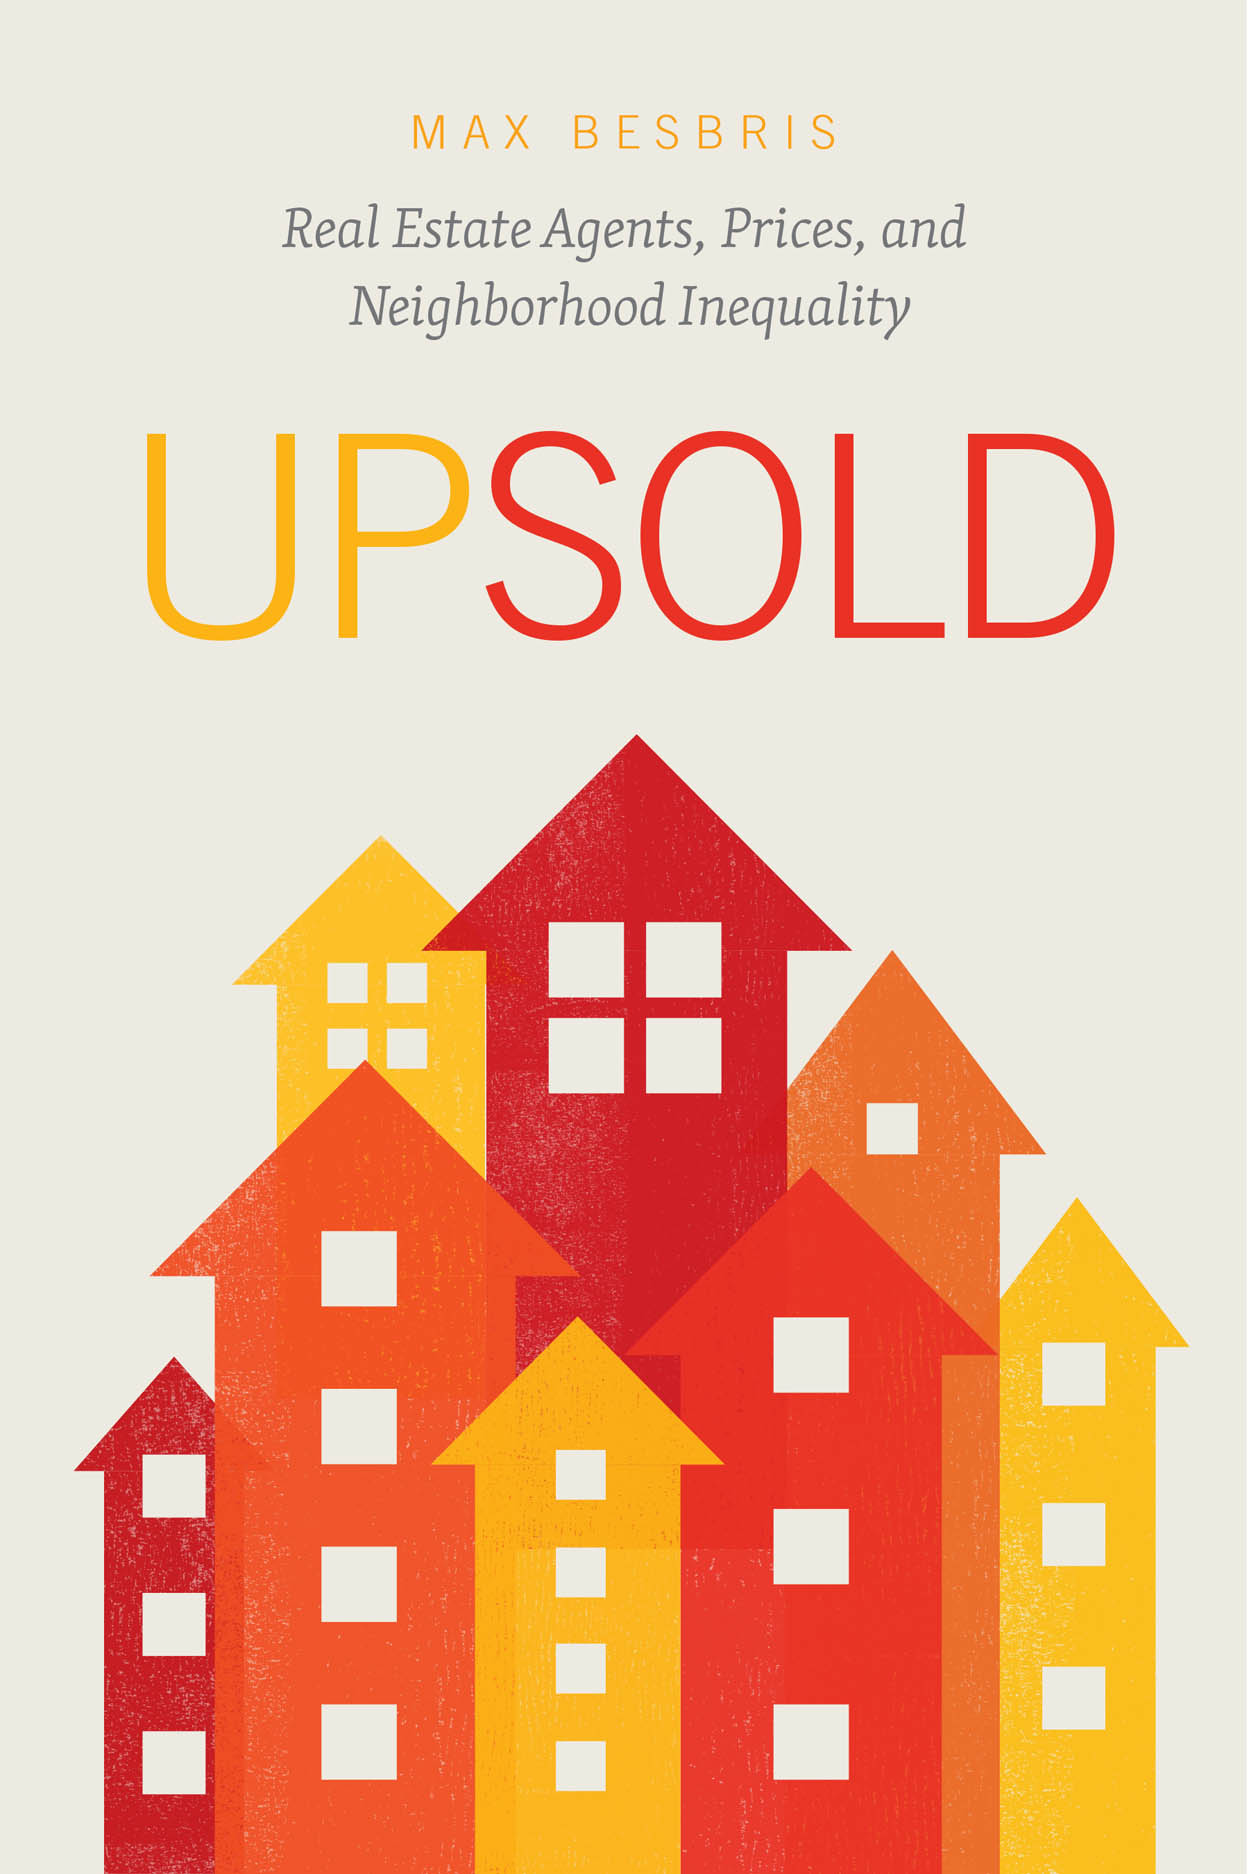 Upsold: Real Estate Agents, Prices, and Neighborhood Inequality